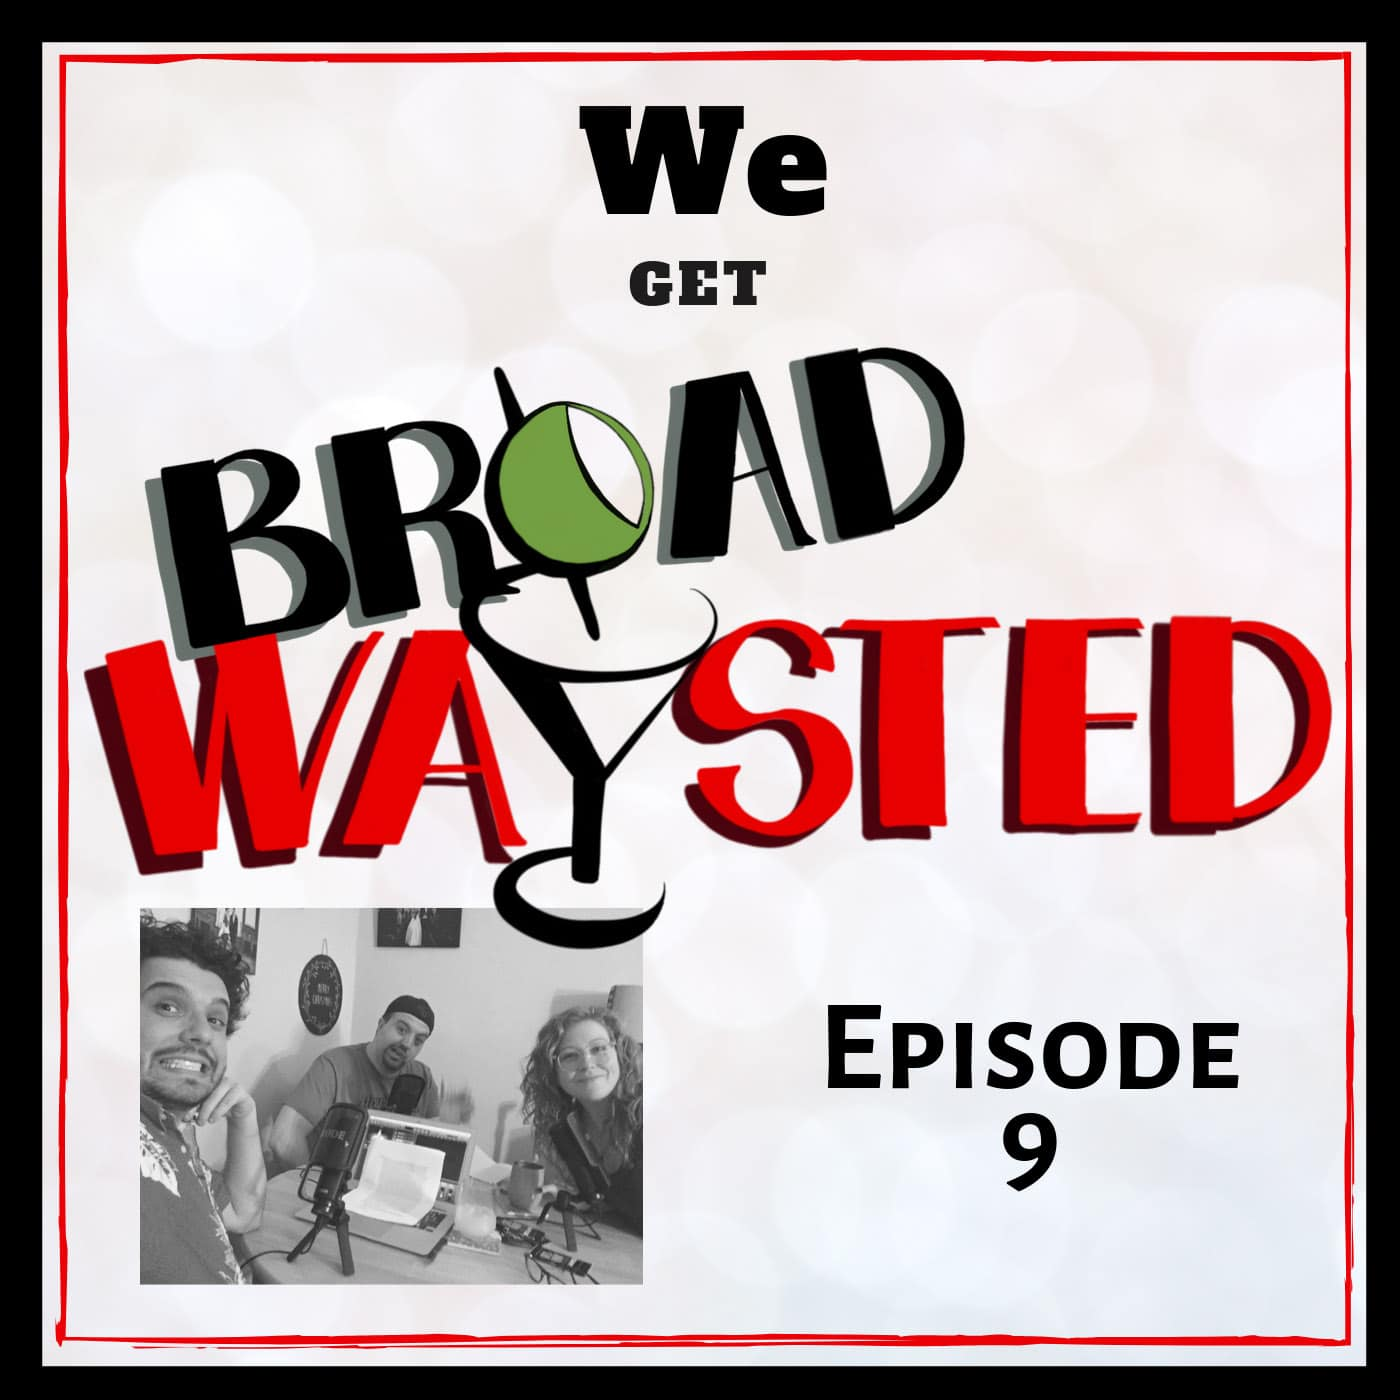 Broadwaysted Ep 9 We